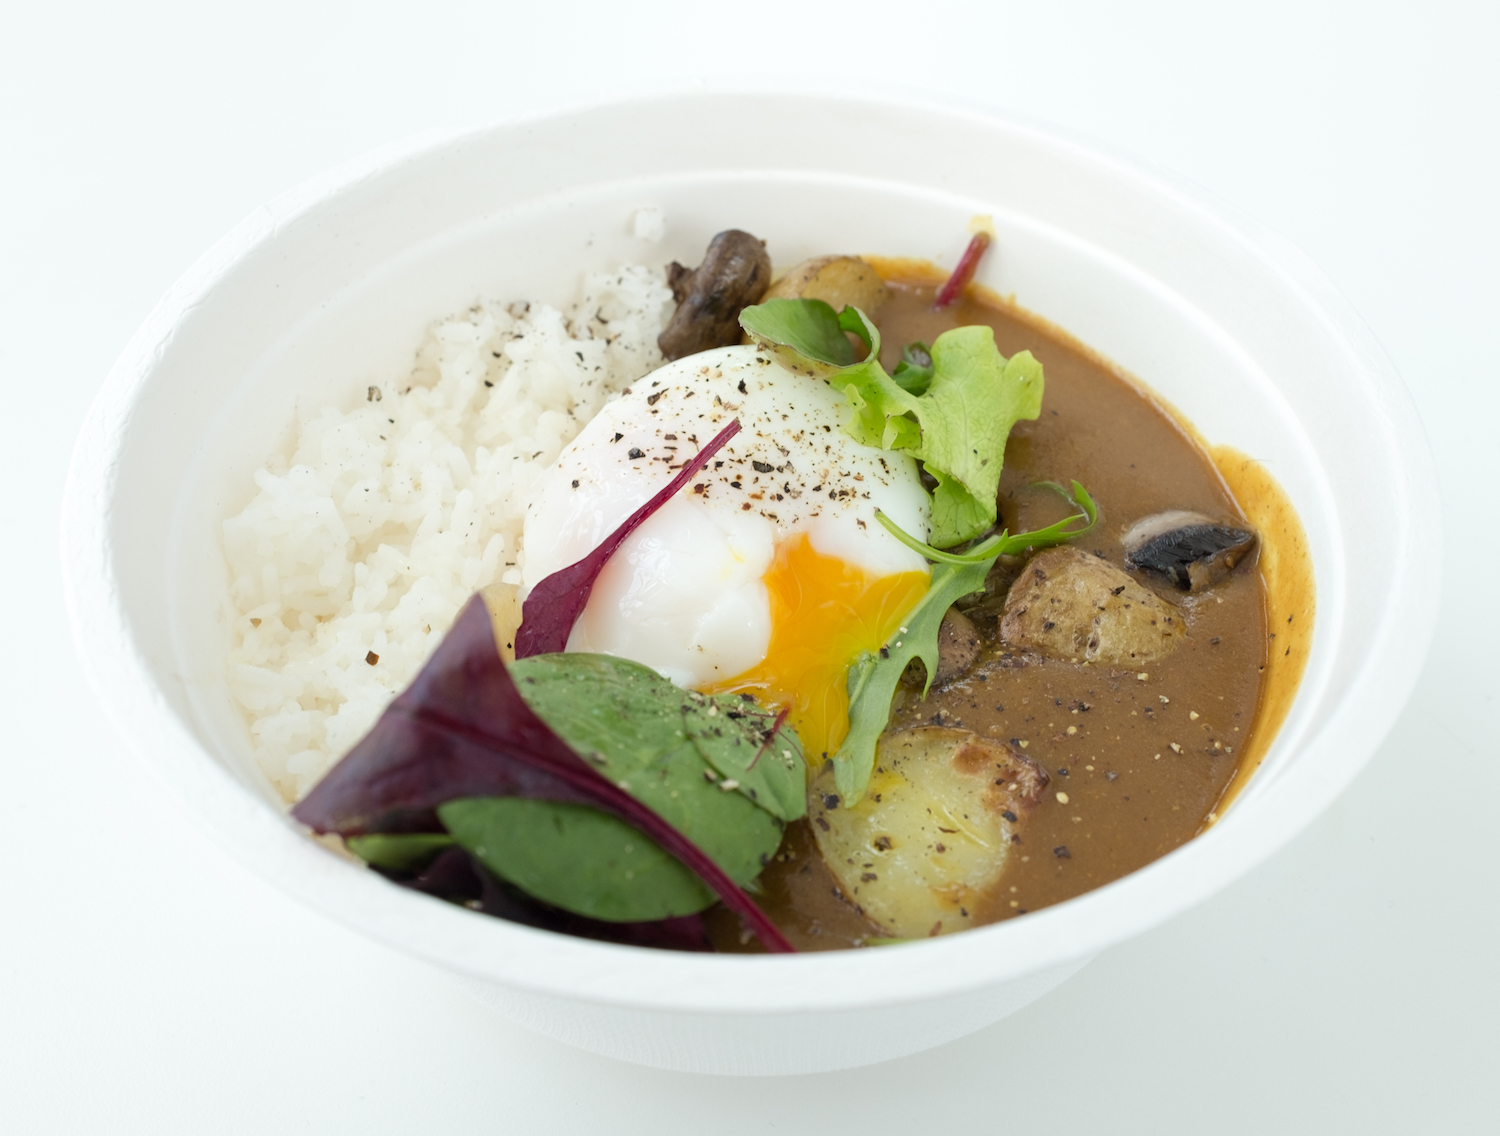 fabcafe singapore_menu_japanese curry bowl lunch_artscience museum